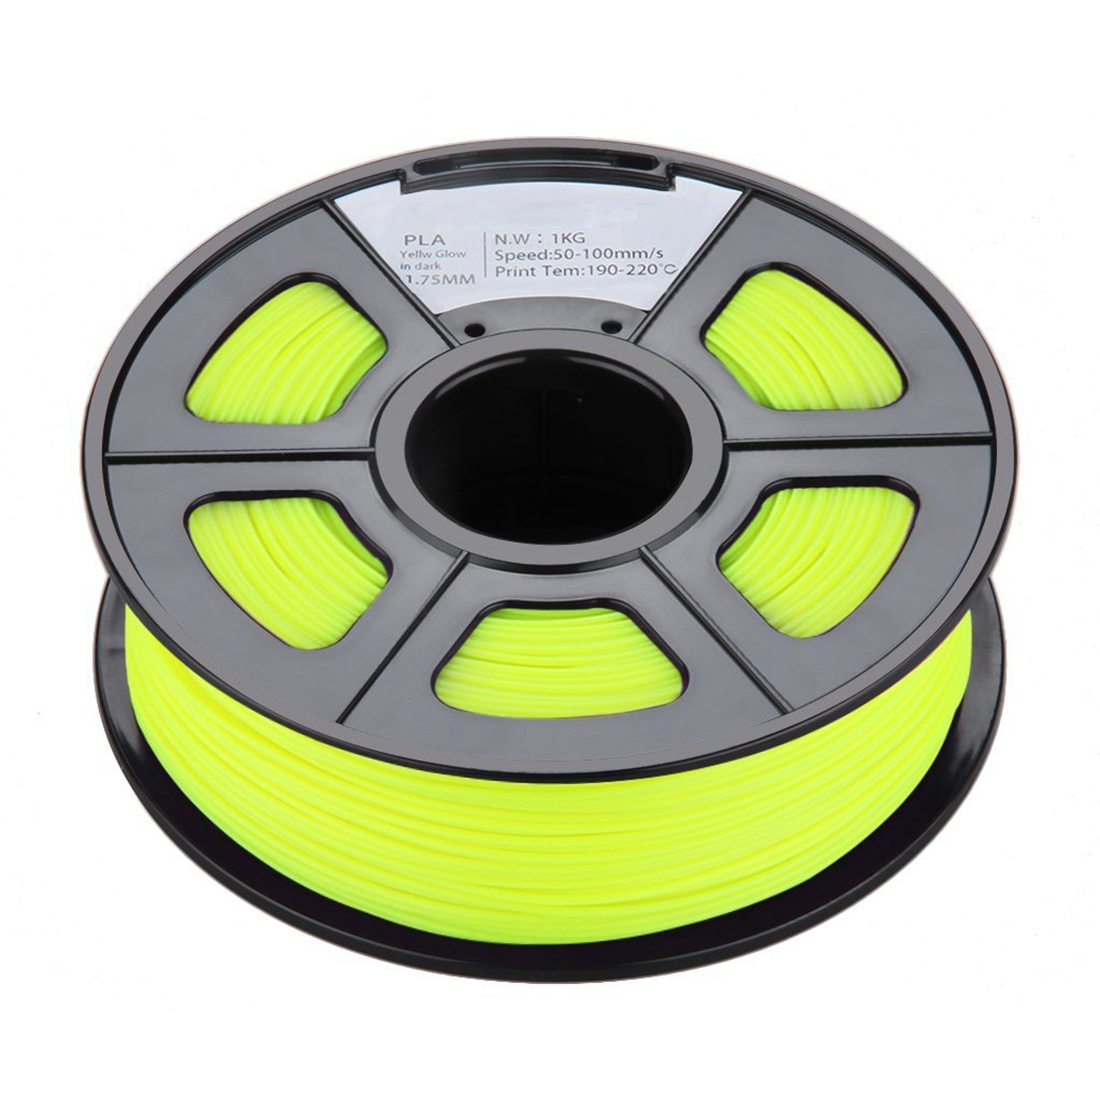 New 1.75mm Glow in the Dark PLA 3D Printer Filament - 1kg Spool (2.2 lbs) - Dimensional Accuracy +/- 0.02mm (Yellow) free ship turbo cartridge chra k03 53039700029 53039880029 058145703j 058145703 for audi a4 a6 vw passat 1 8t atw aug aeb 1 8l